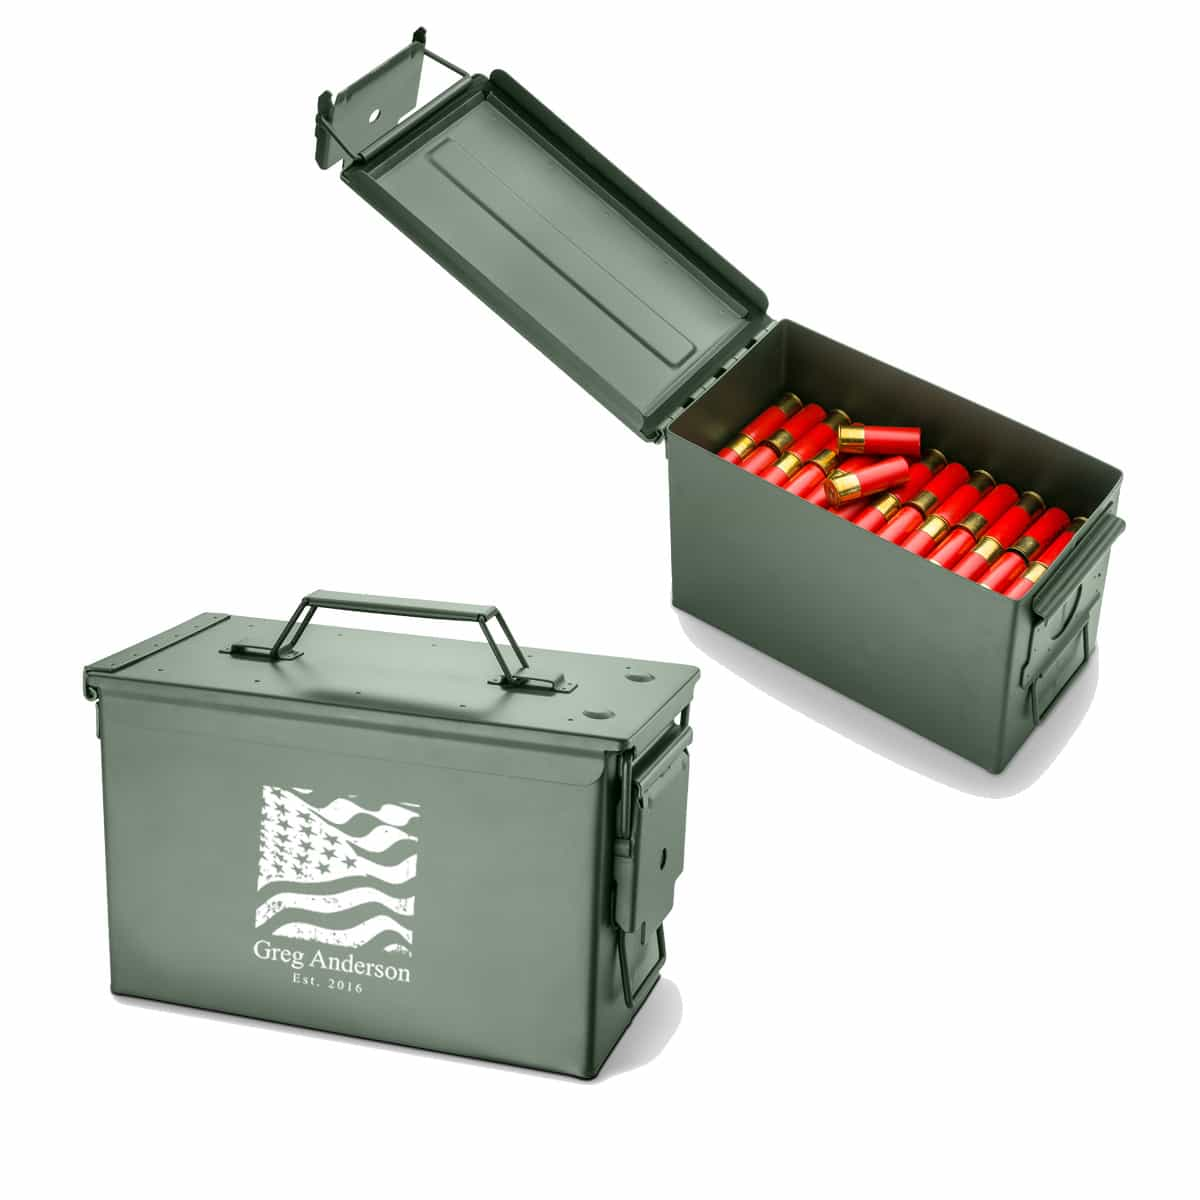 Personalized Metal Ammo Box The Man Registry : gc1409 personalized ammo box from themanregistry.com size 1200 x 1200 jpeg 34kB